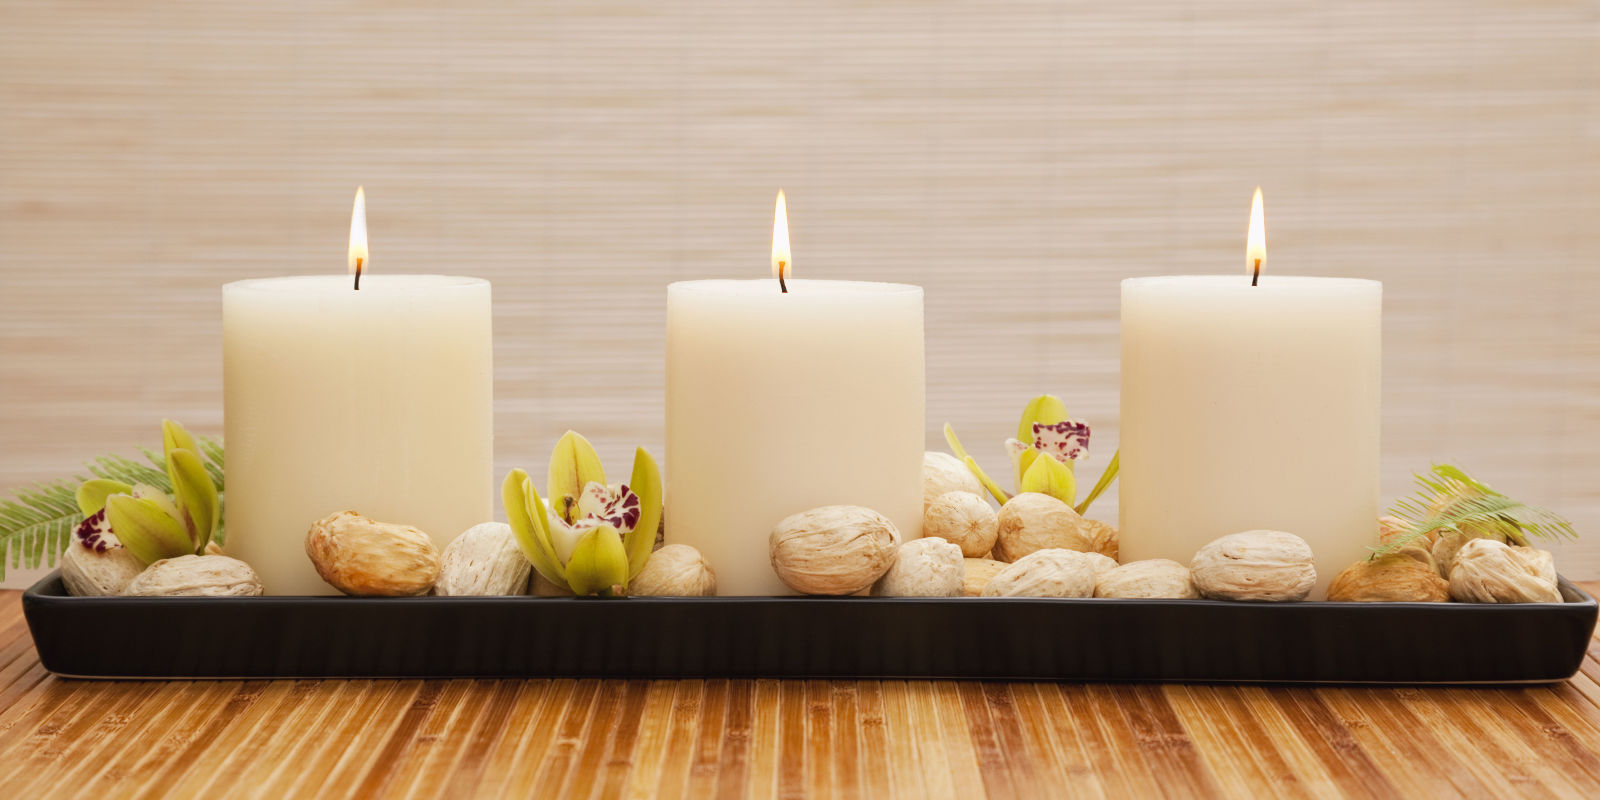 This Trick Can Make Your Scented Candle Last Longer